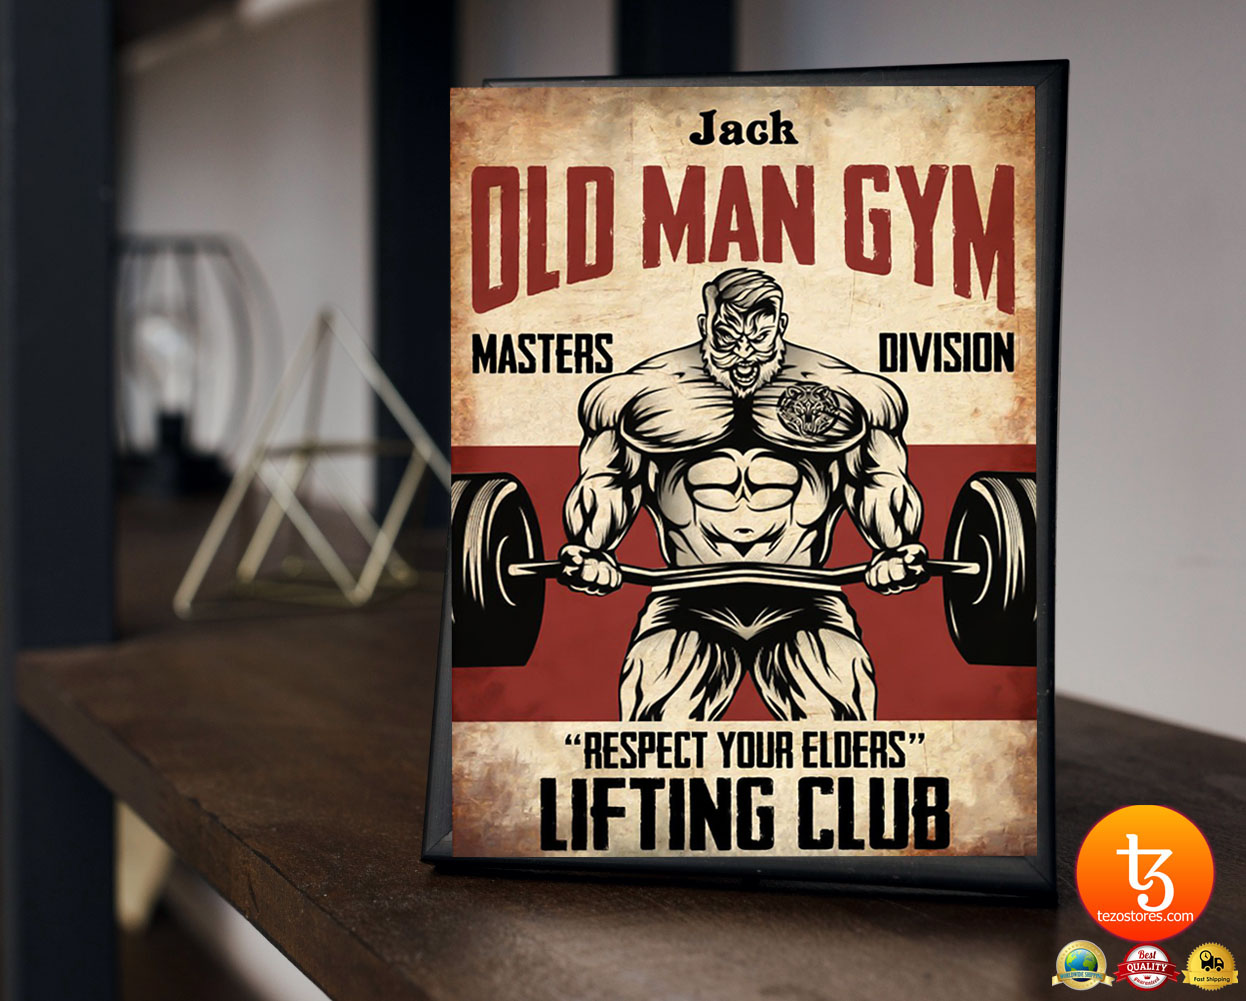 Old man gym masters division respect your elders lifting club poster 21